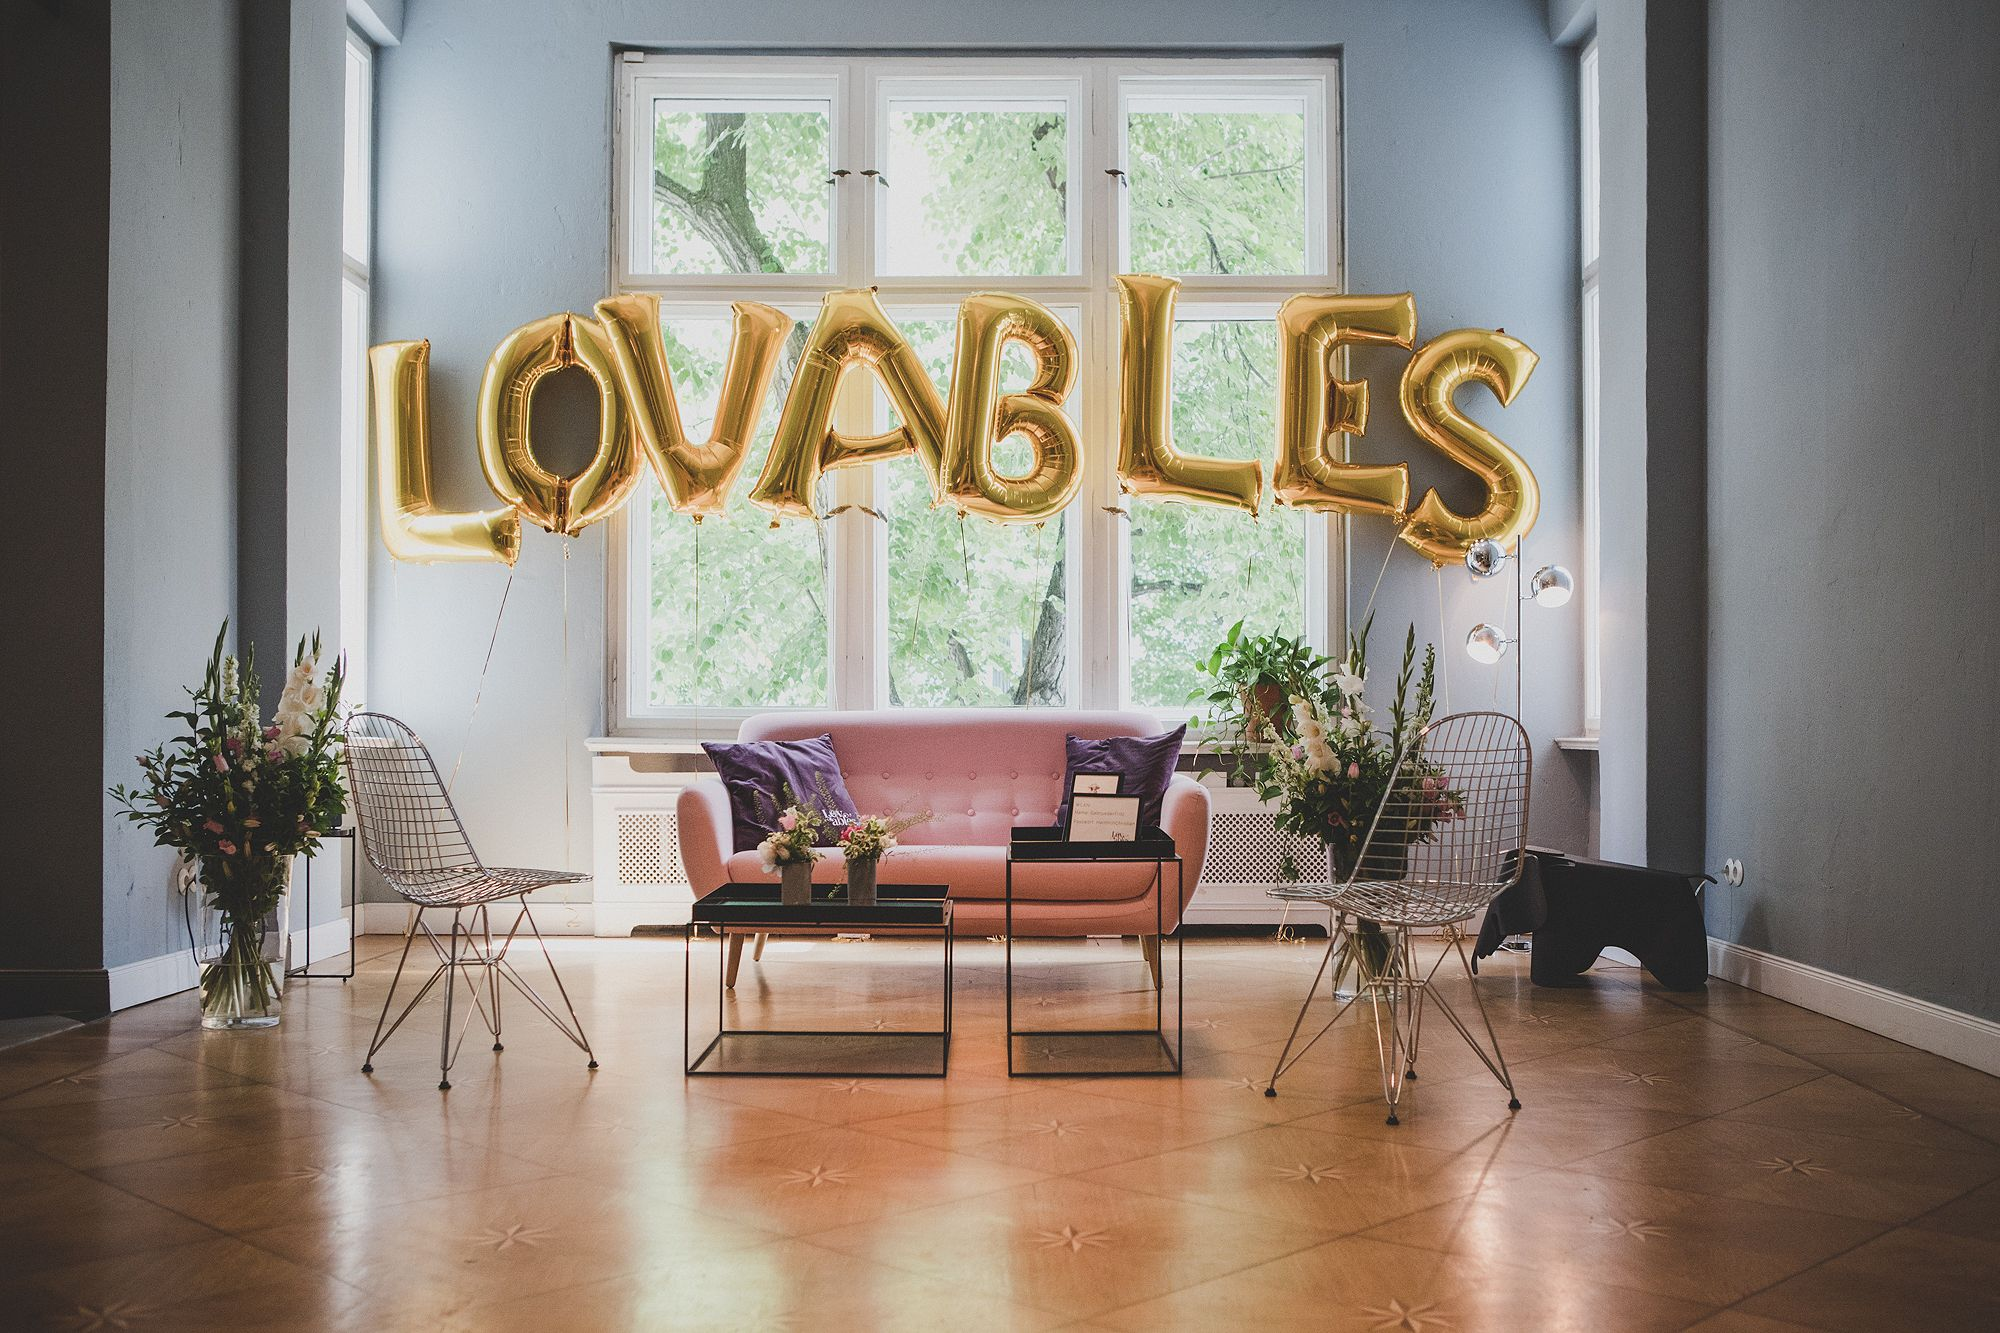 Lovables - Event Review - KIM ENGEL